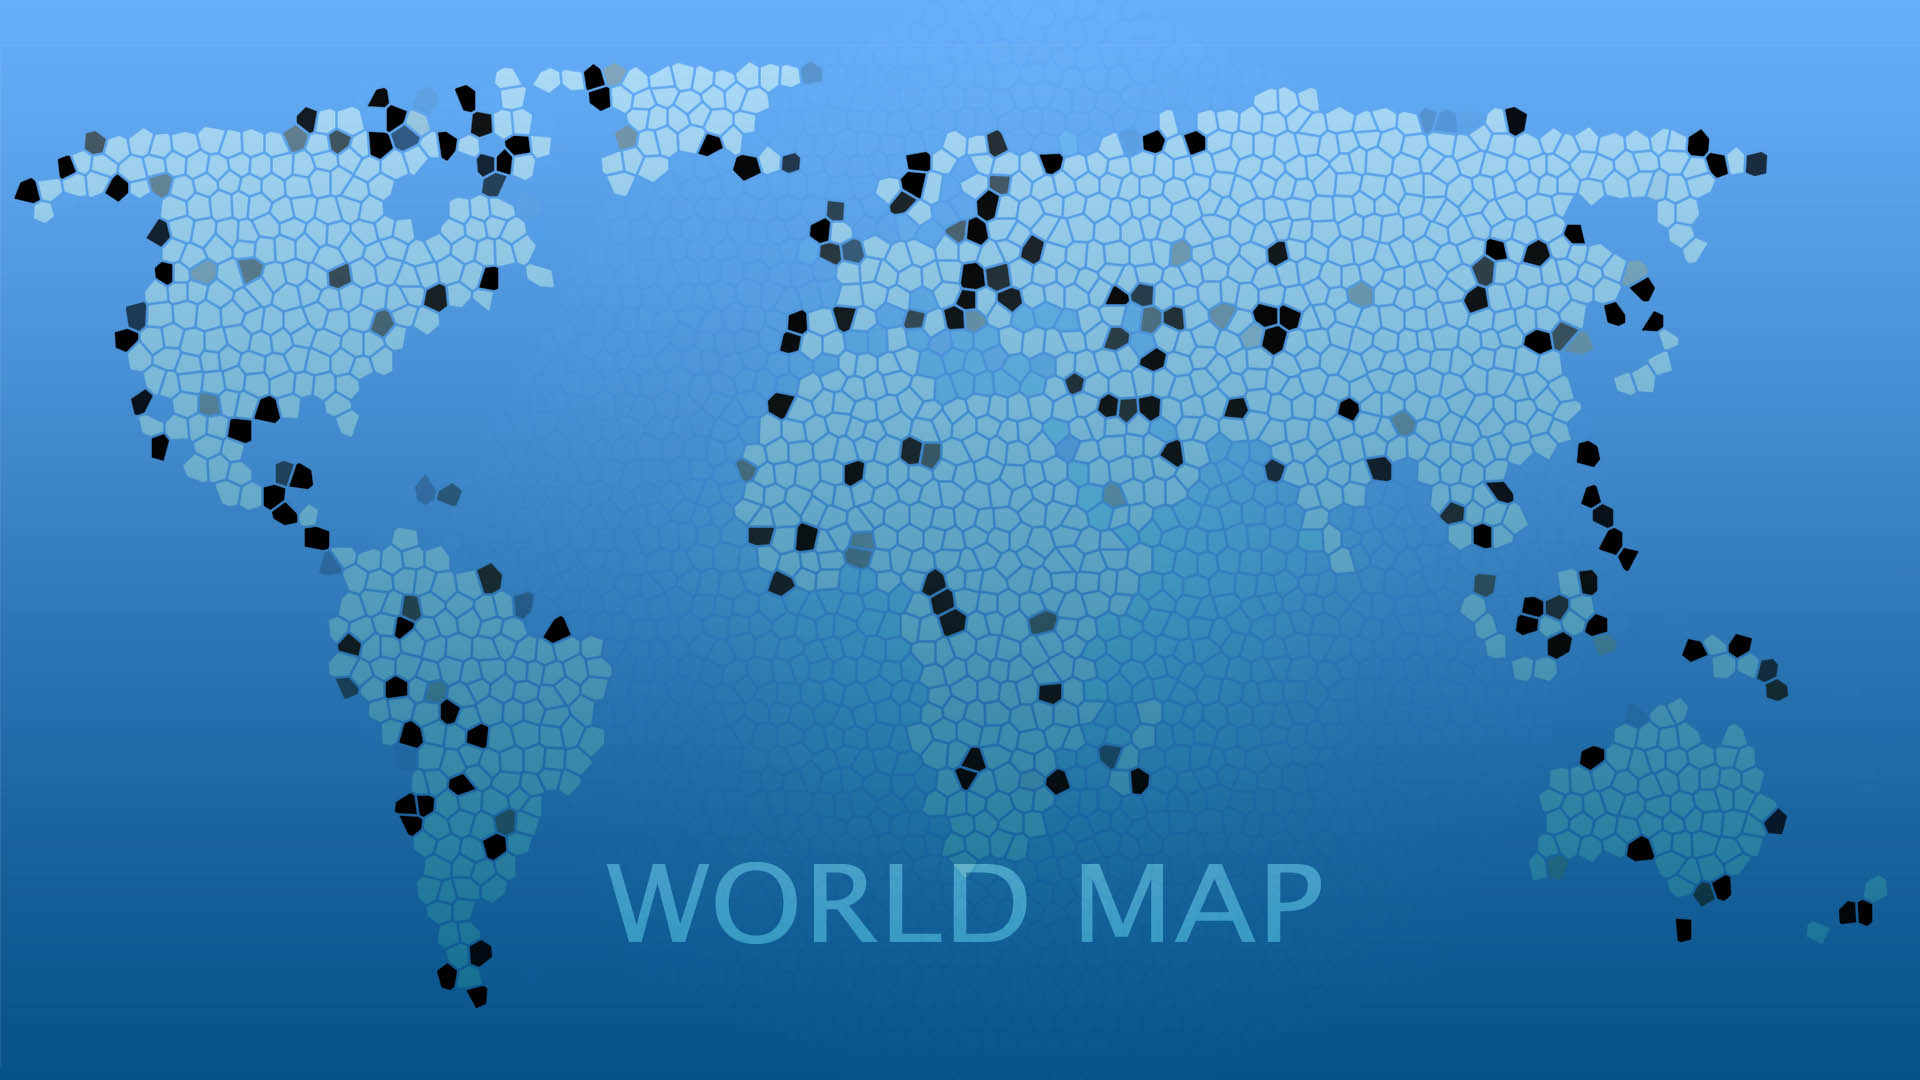 99 world maps with countries wallpaper old world map wallpaper zup297 world map with countries wallpapers awesome 1920x1080 gumiabroncs Images